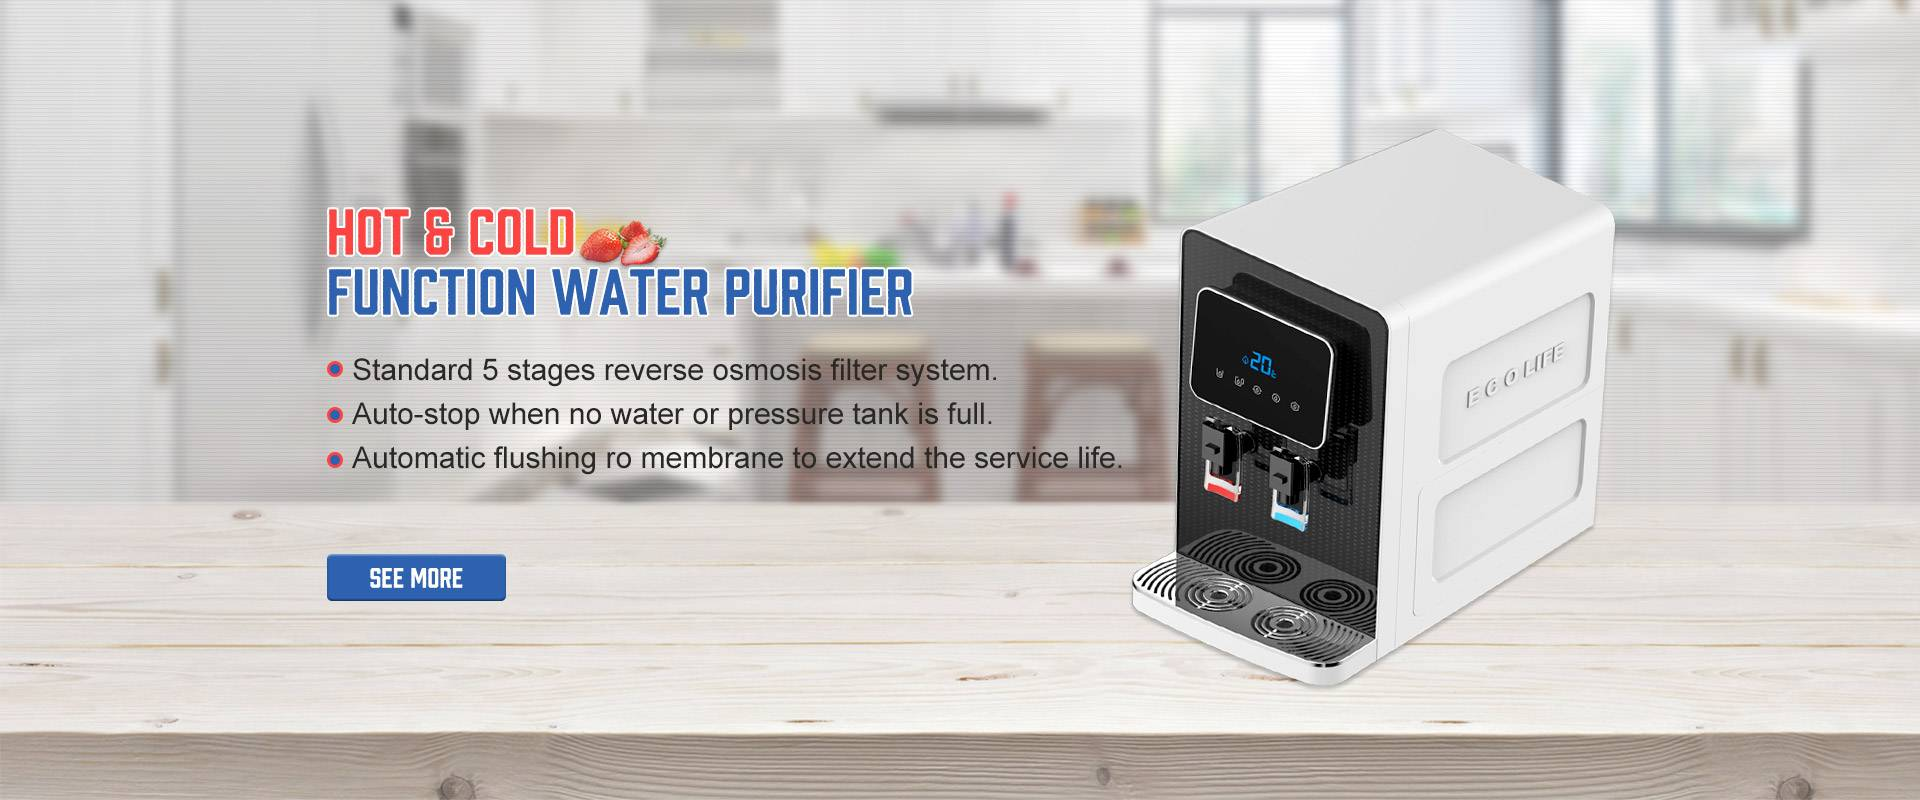 Hot & cold function water purifier